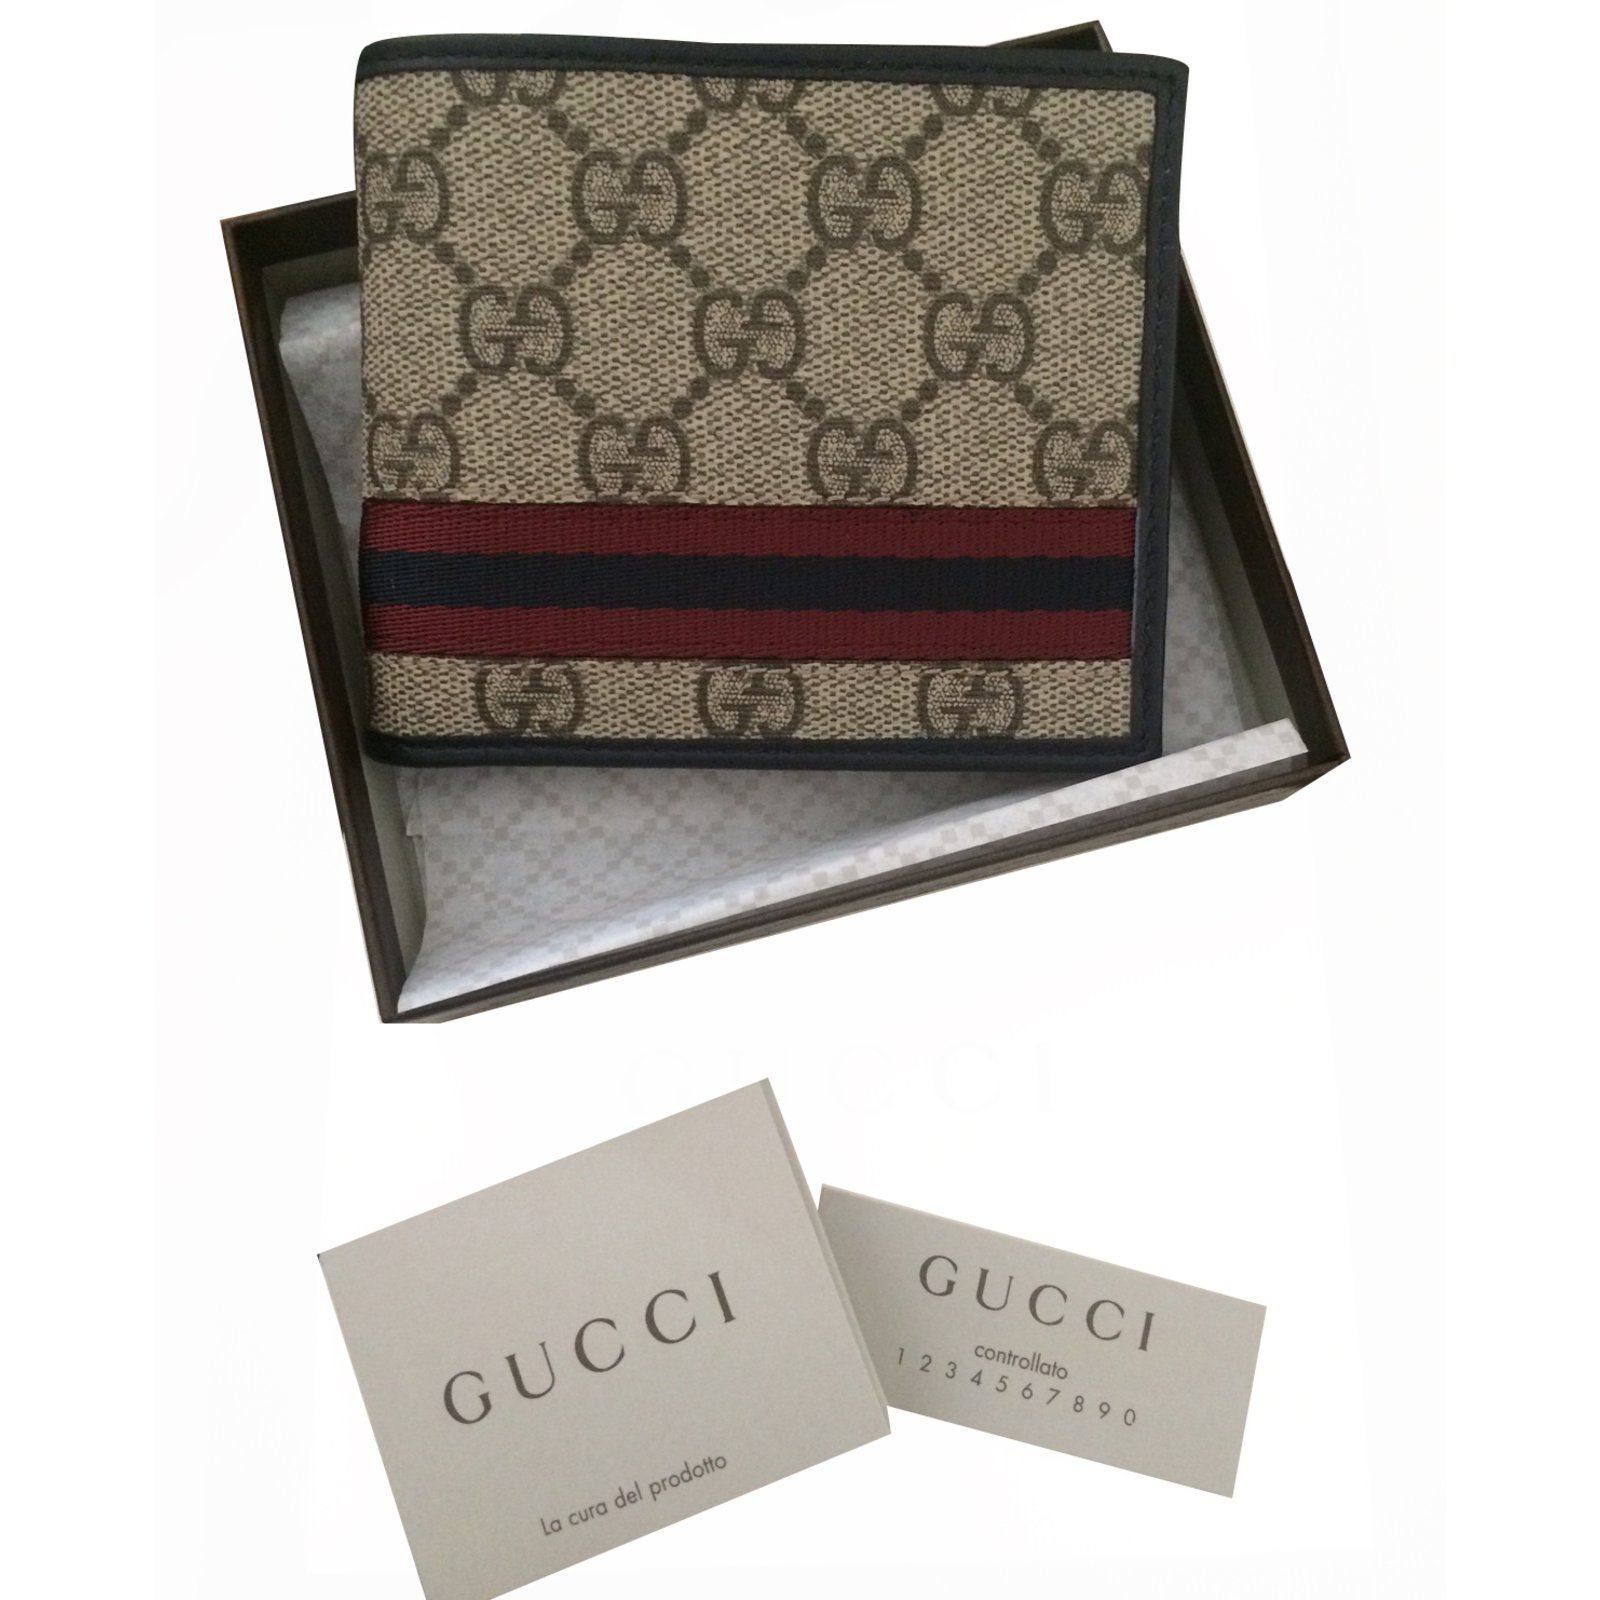 Gucci Homme Portefeuille